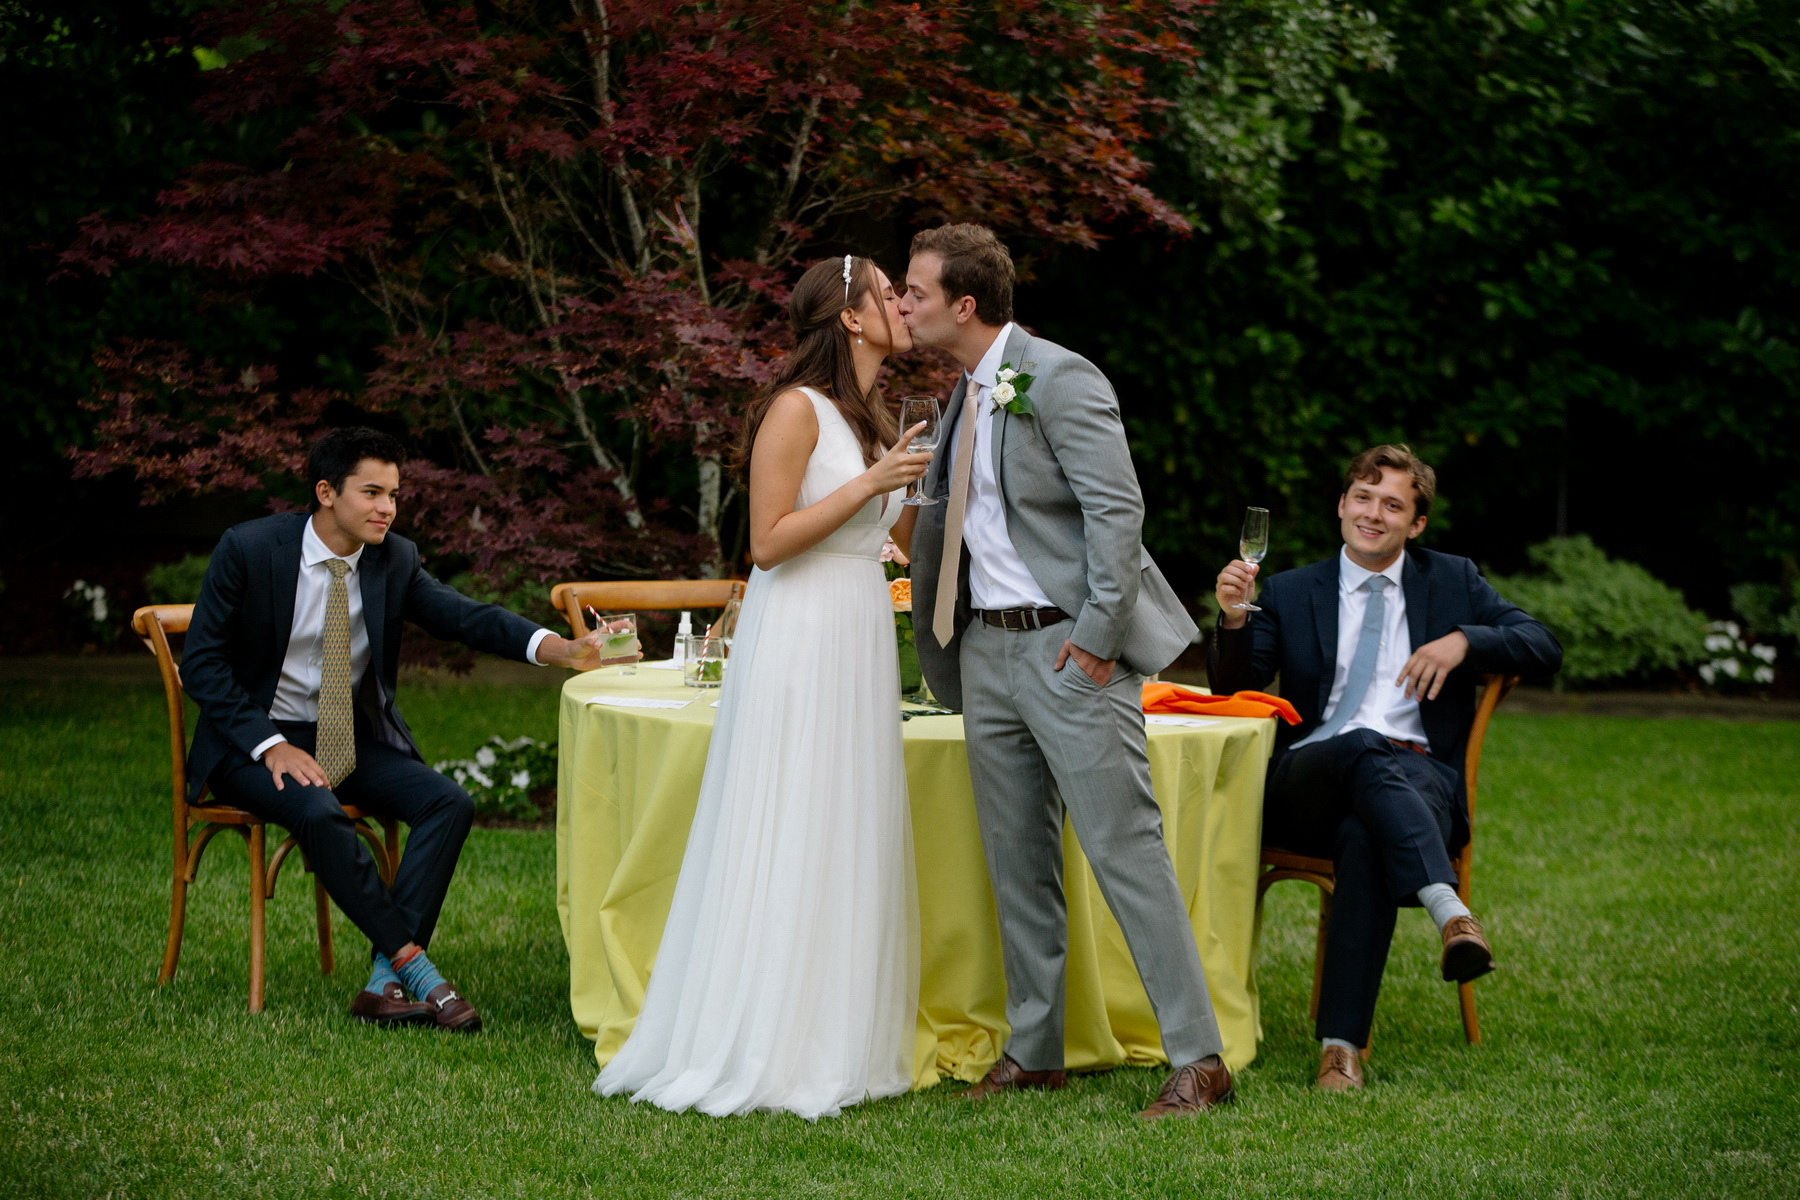 bride and groom give a toast at their backyard wedding